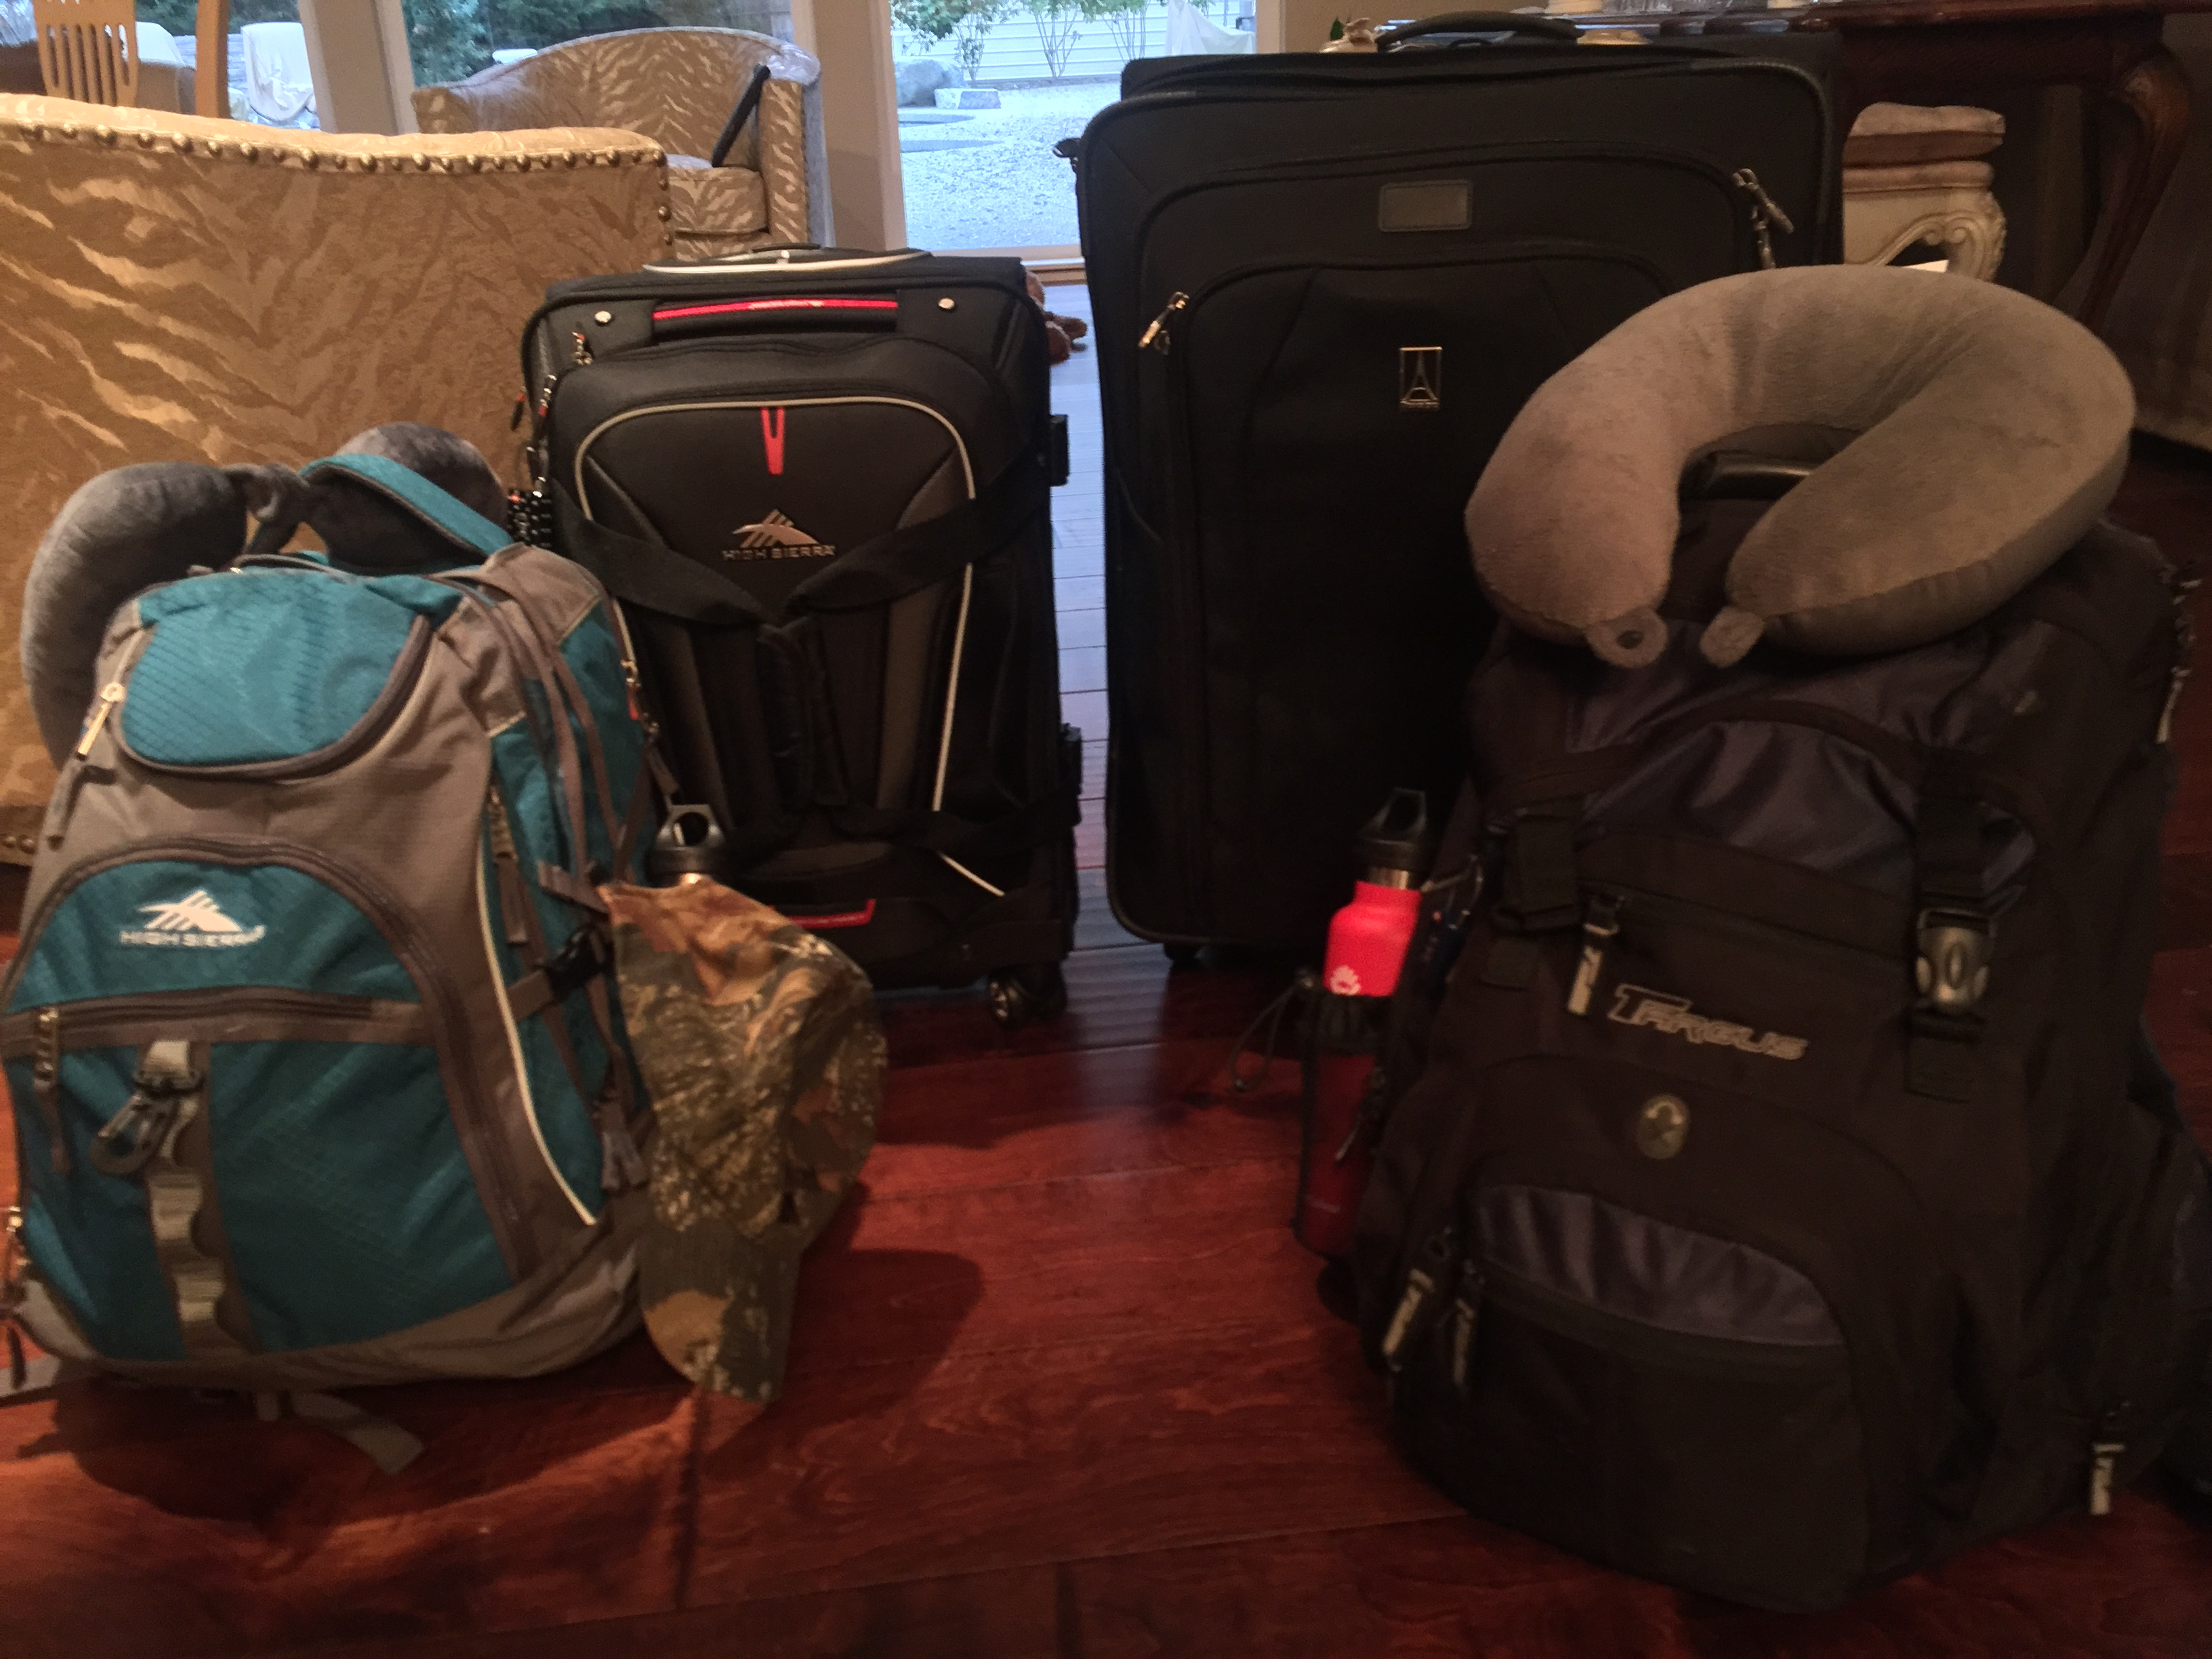 2 suitcases and 2 back packs for a year